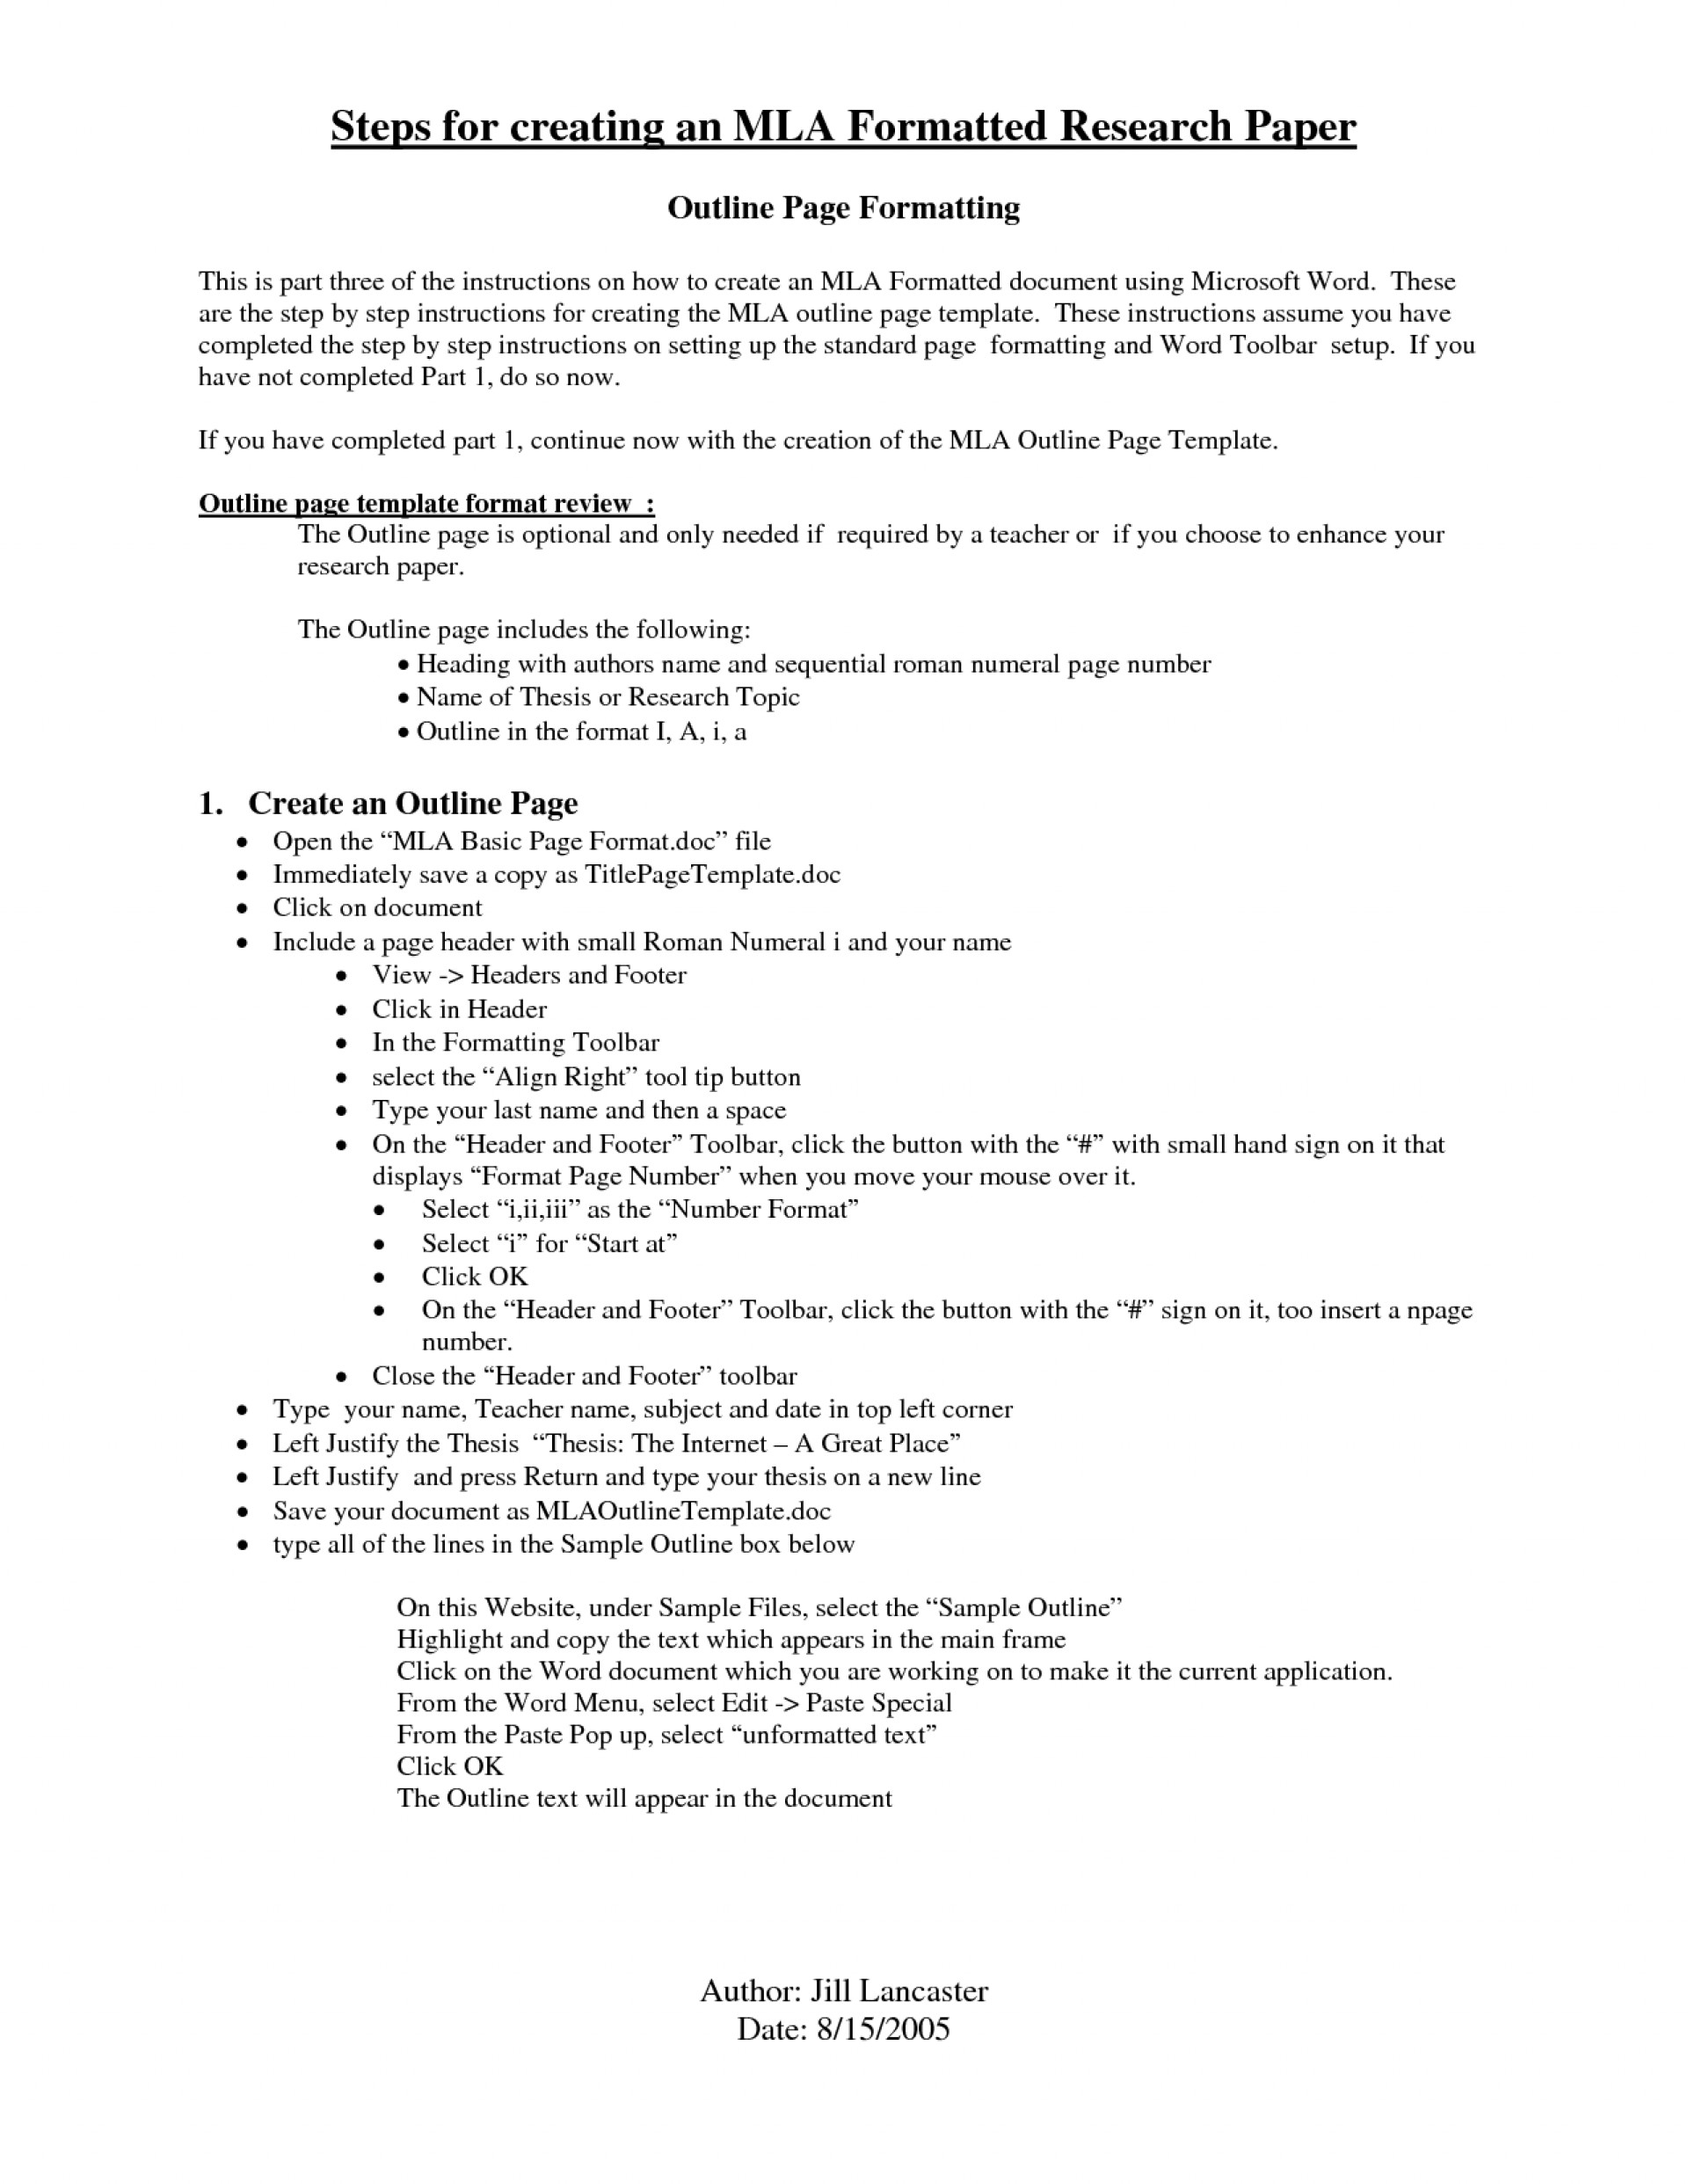 008 Research Paper How Do I Write In Mla Format Essay Papers Outline Template Heading Title Page College Without Style Paragraph Example Excellent A To Cite 1920